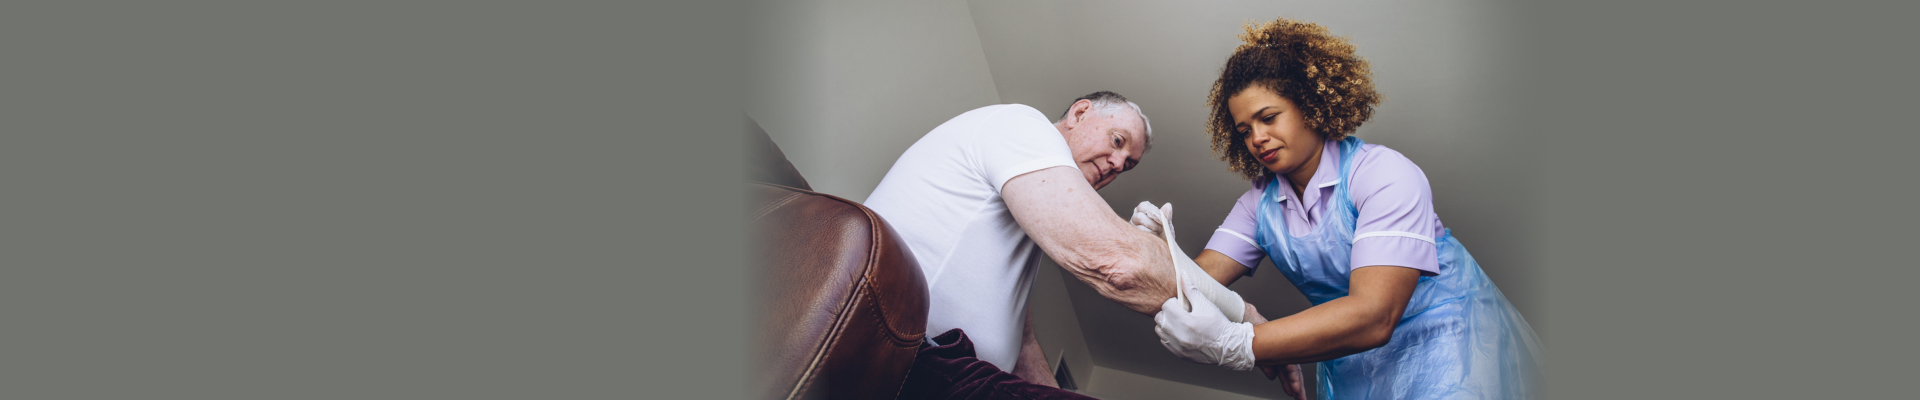 caregiver covering elderly man's arm